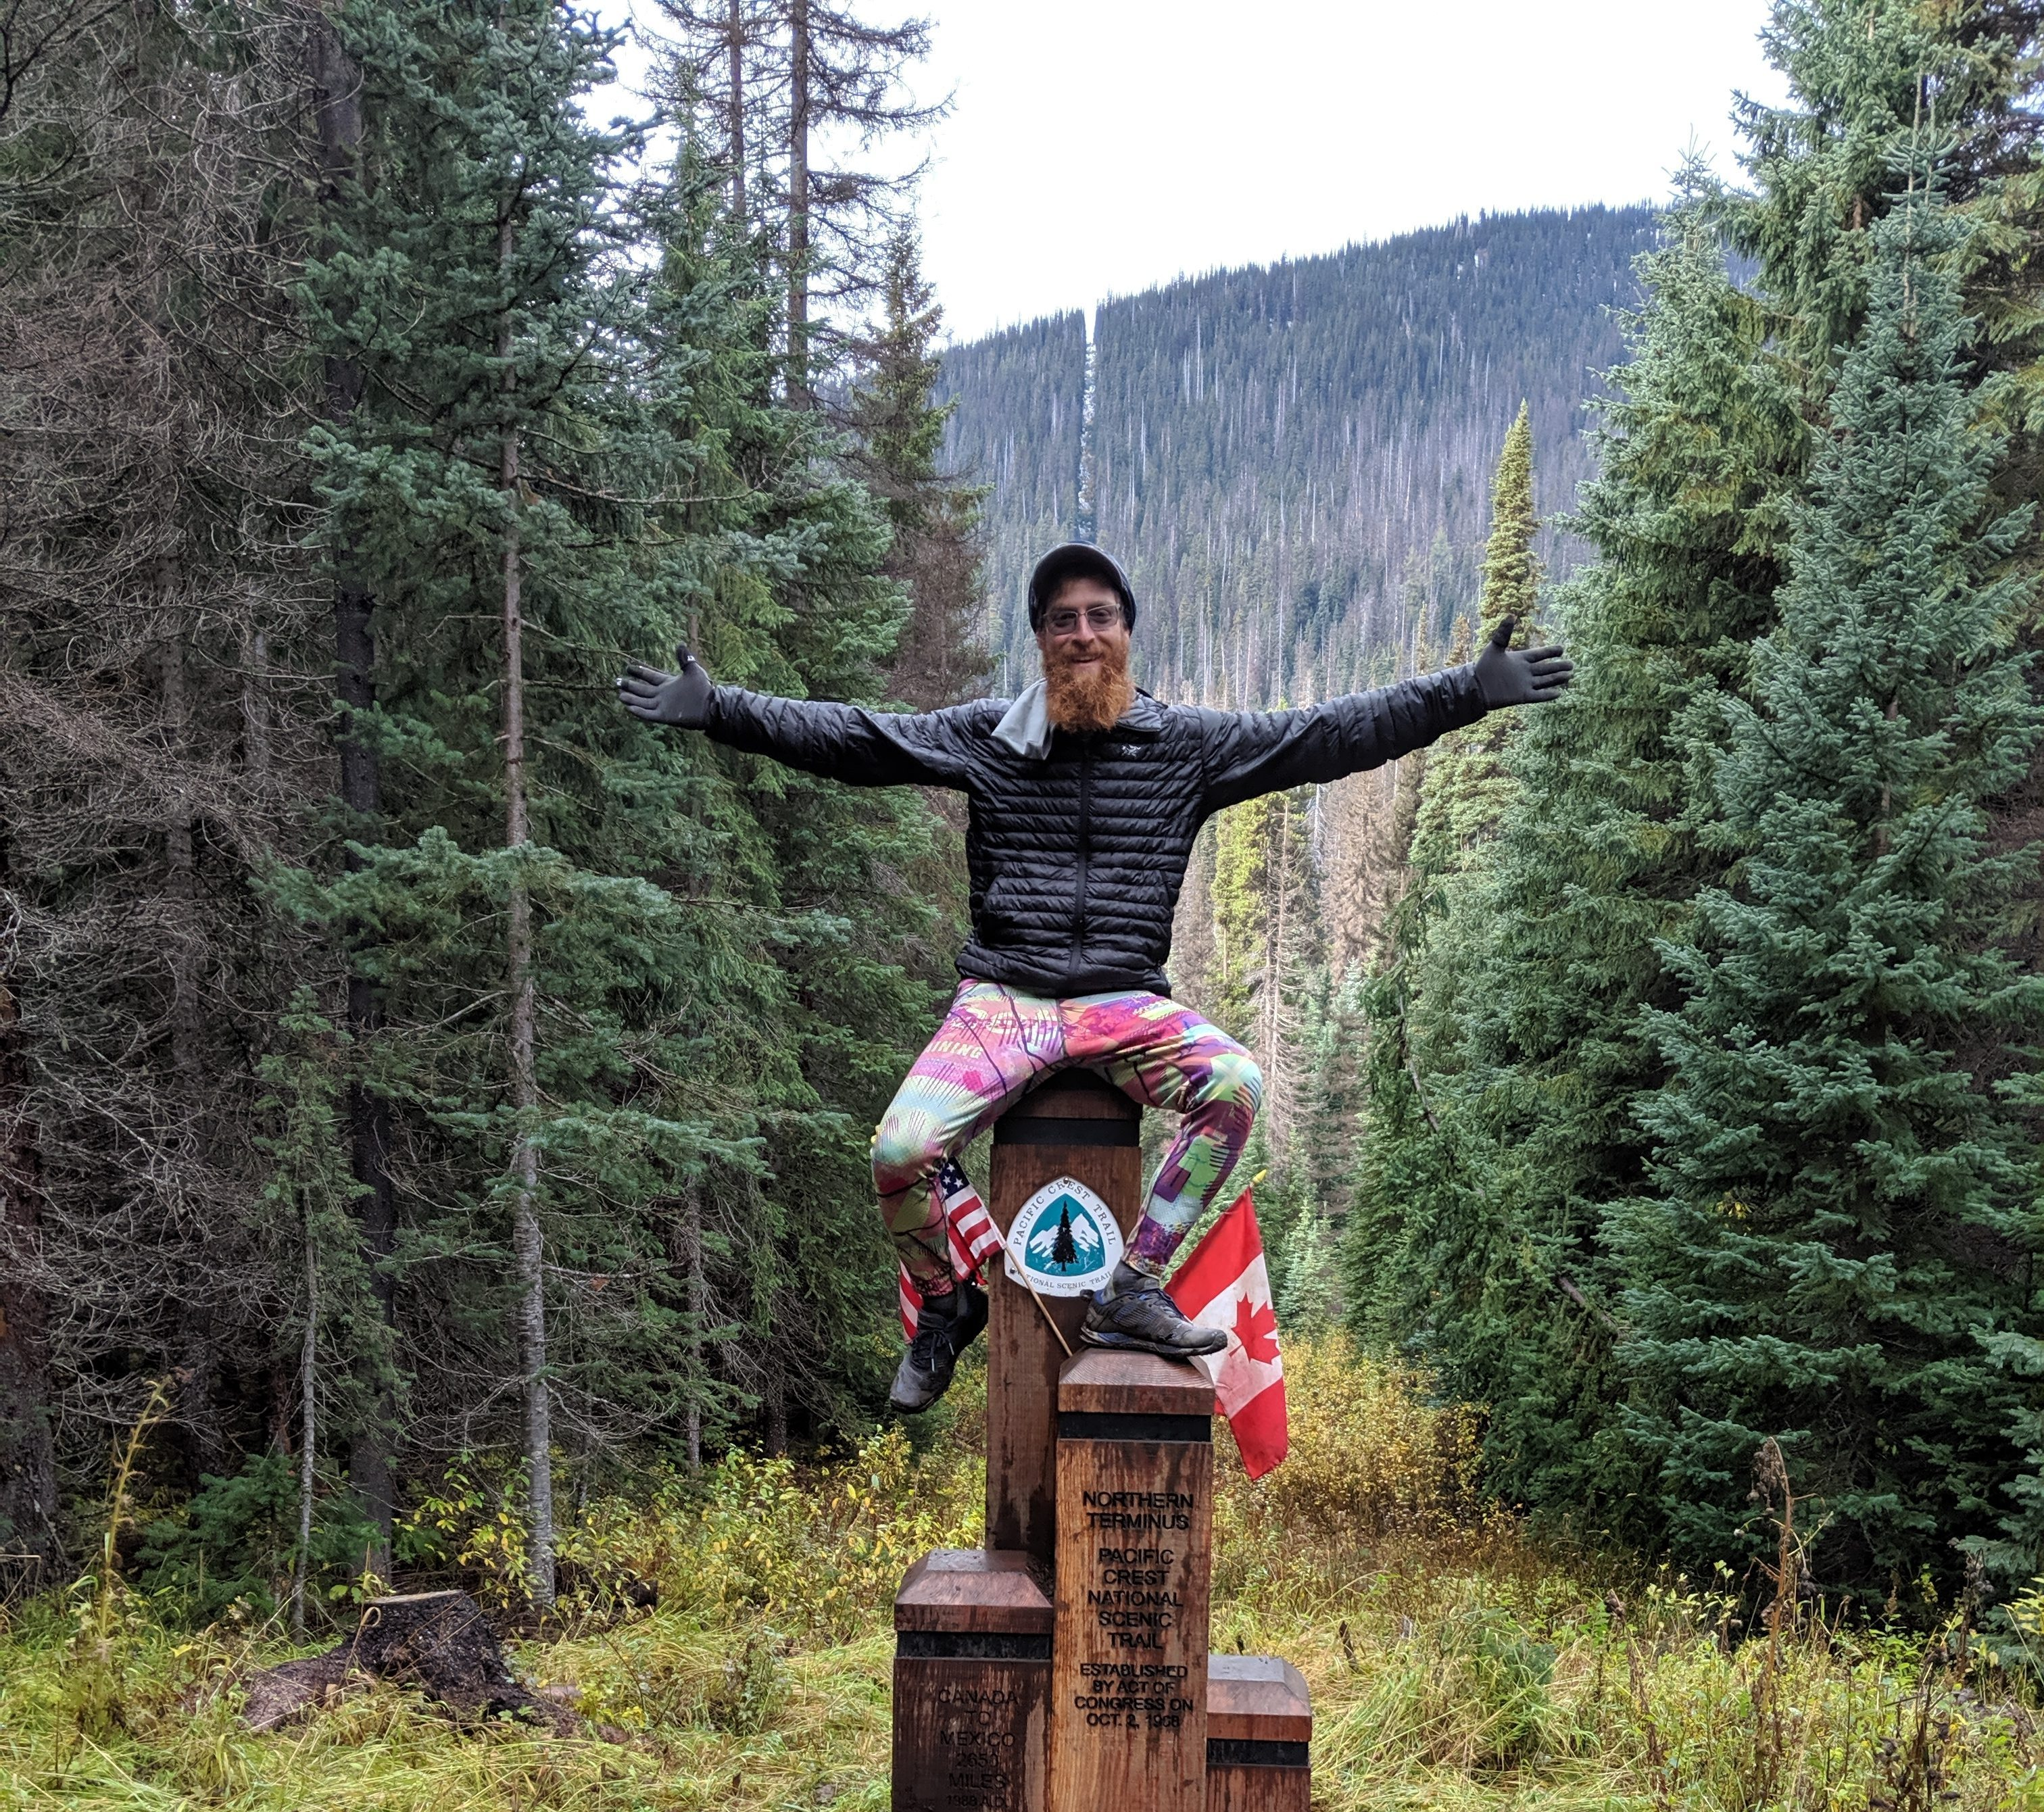 Congrats to These 2019 Pacific Crest Trail Thru-Hikers: October 3 - October 9 - The Trek